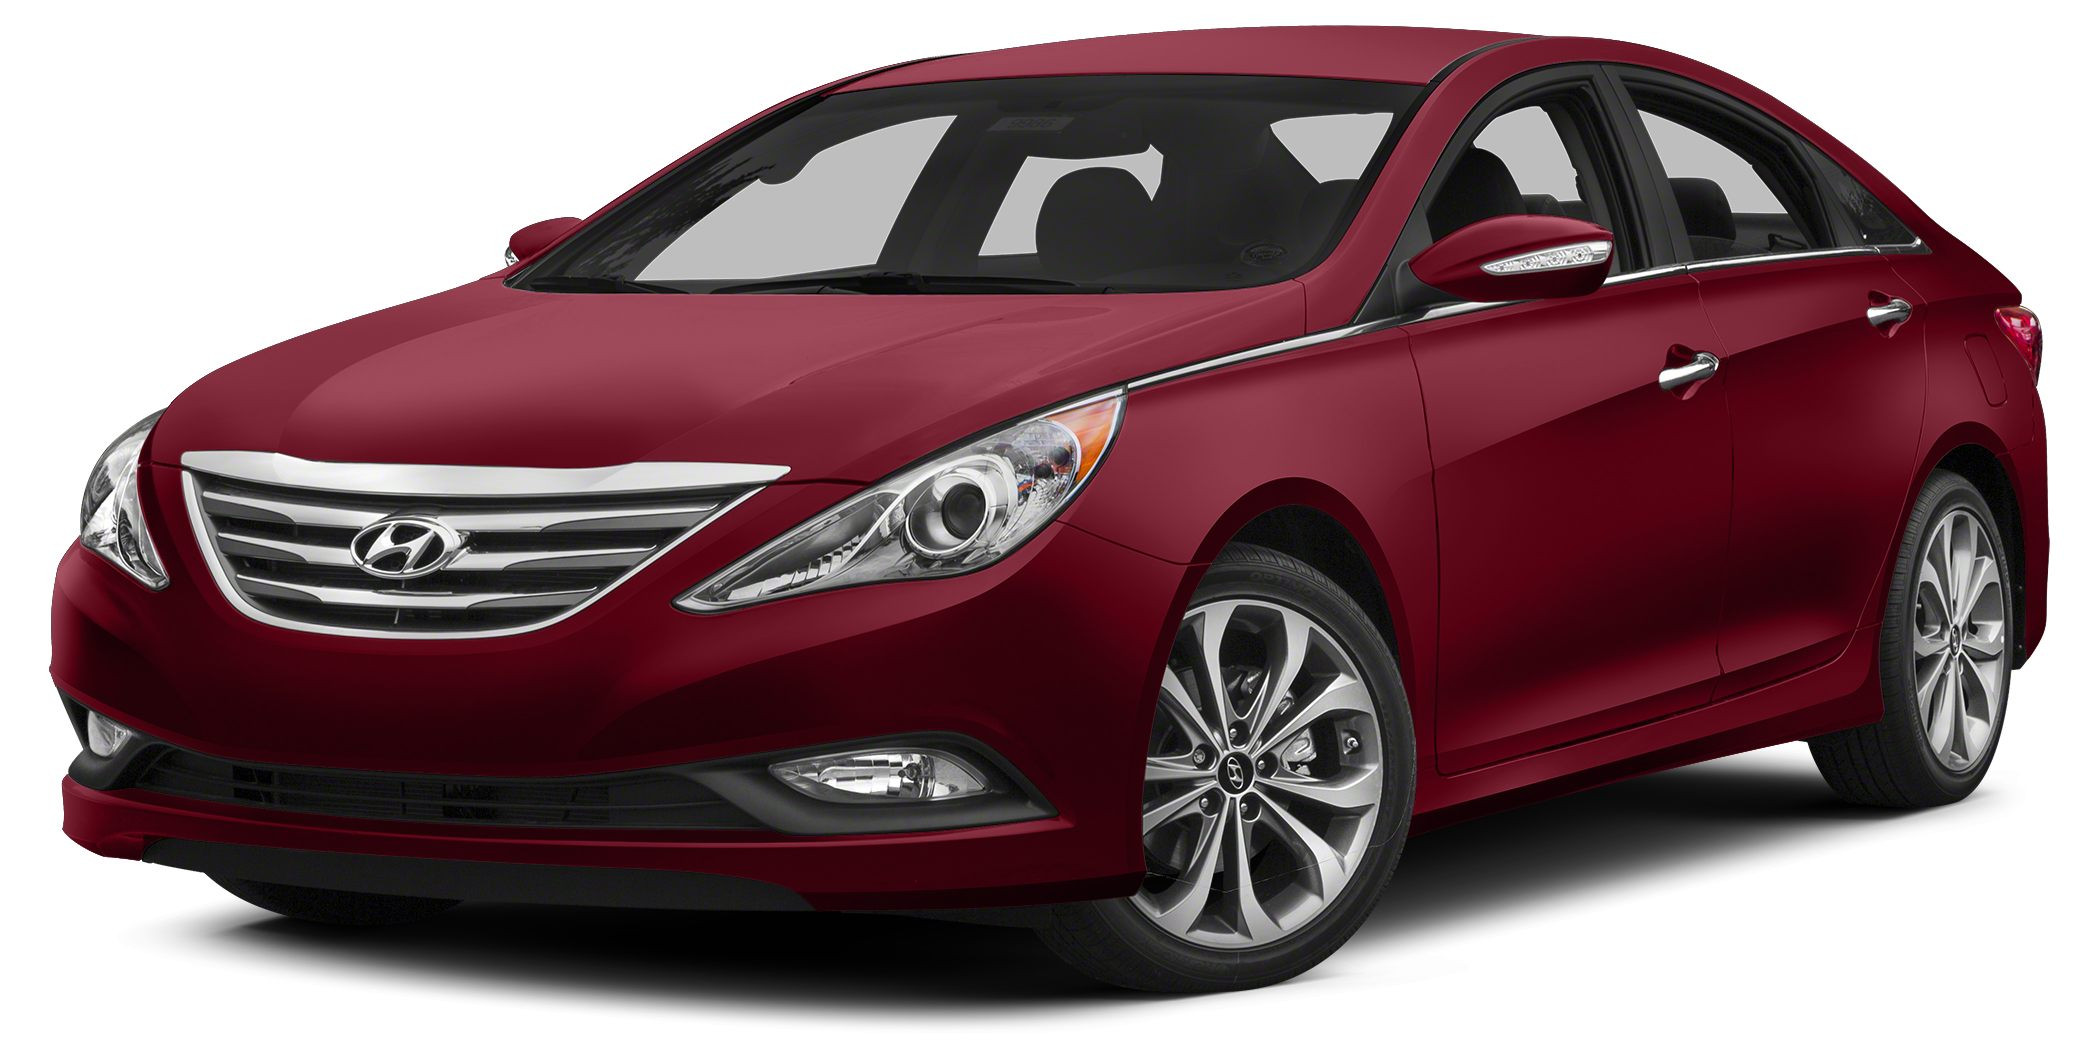 2014 Hyundai Sonata SE 20T HYUNDAI CERTIFIED - NAVIGATION-ROOF-TURBO-JUST 15K- One Owner SE Sonat